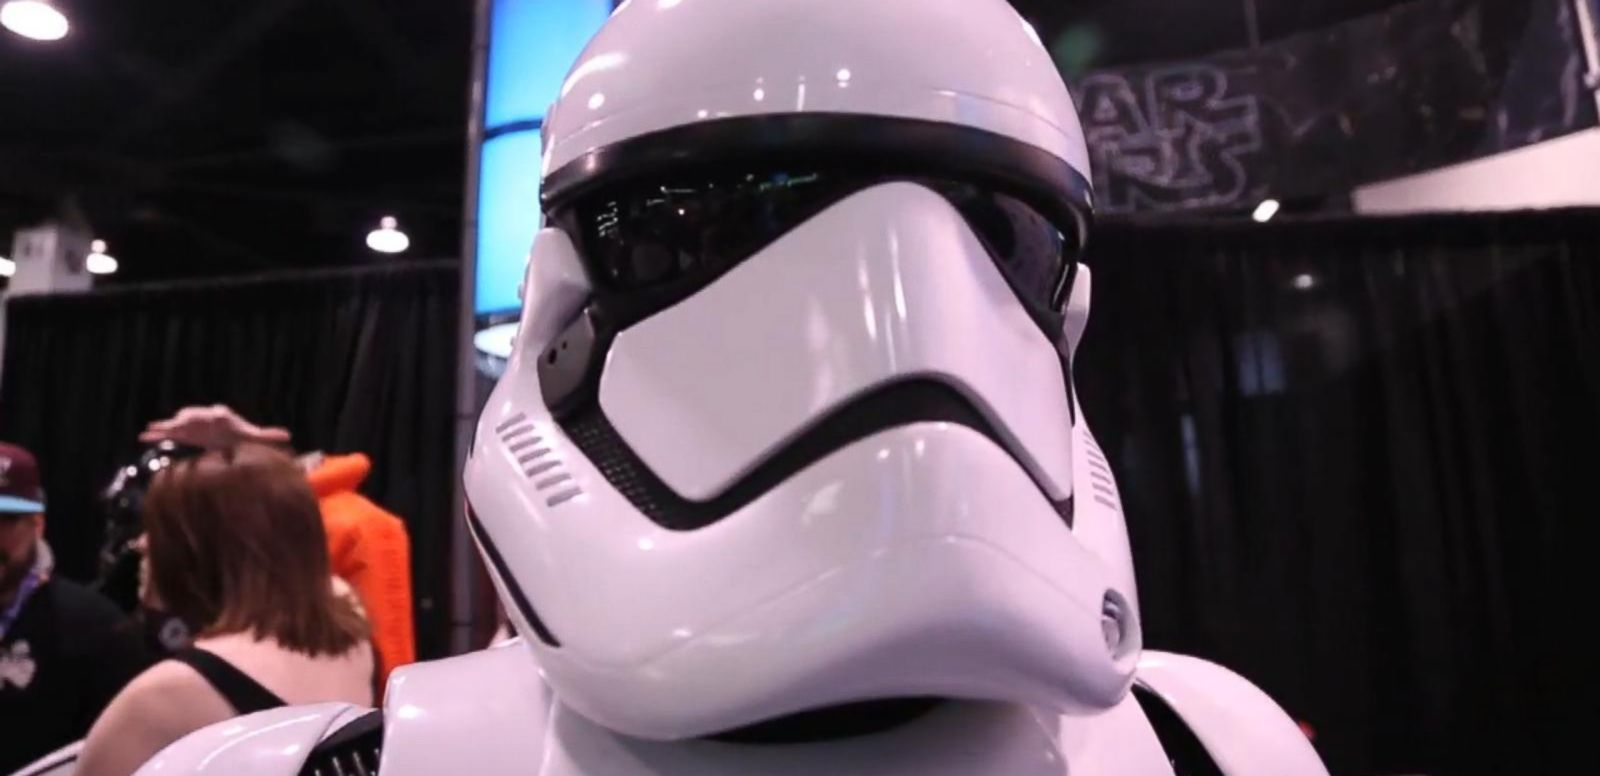 VIDEO: New Star Wars Episode VII Storm Trooper Uniform is the Main Attraction at Celebration